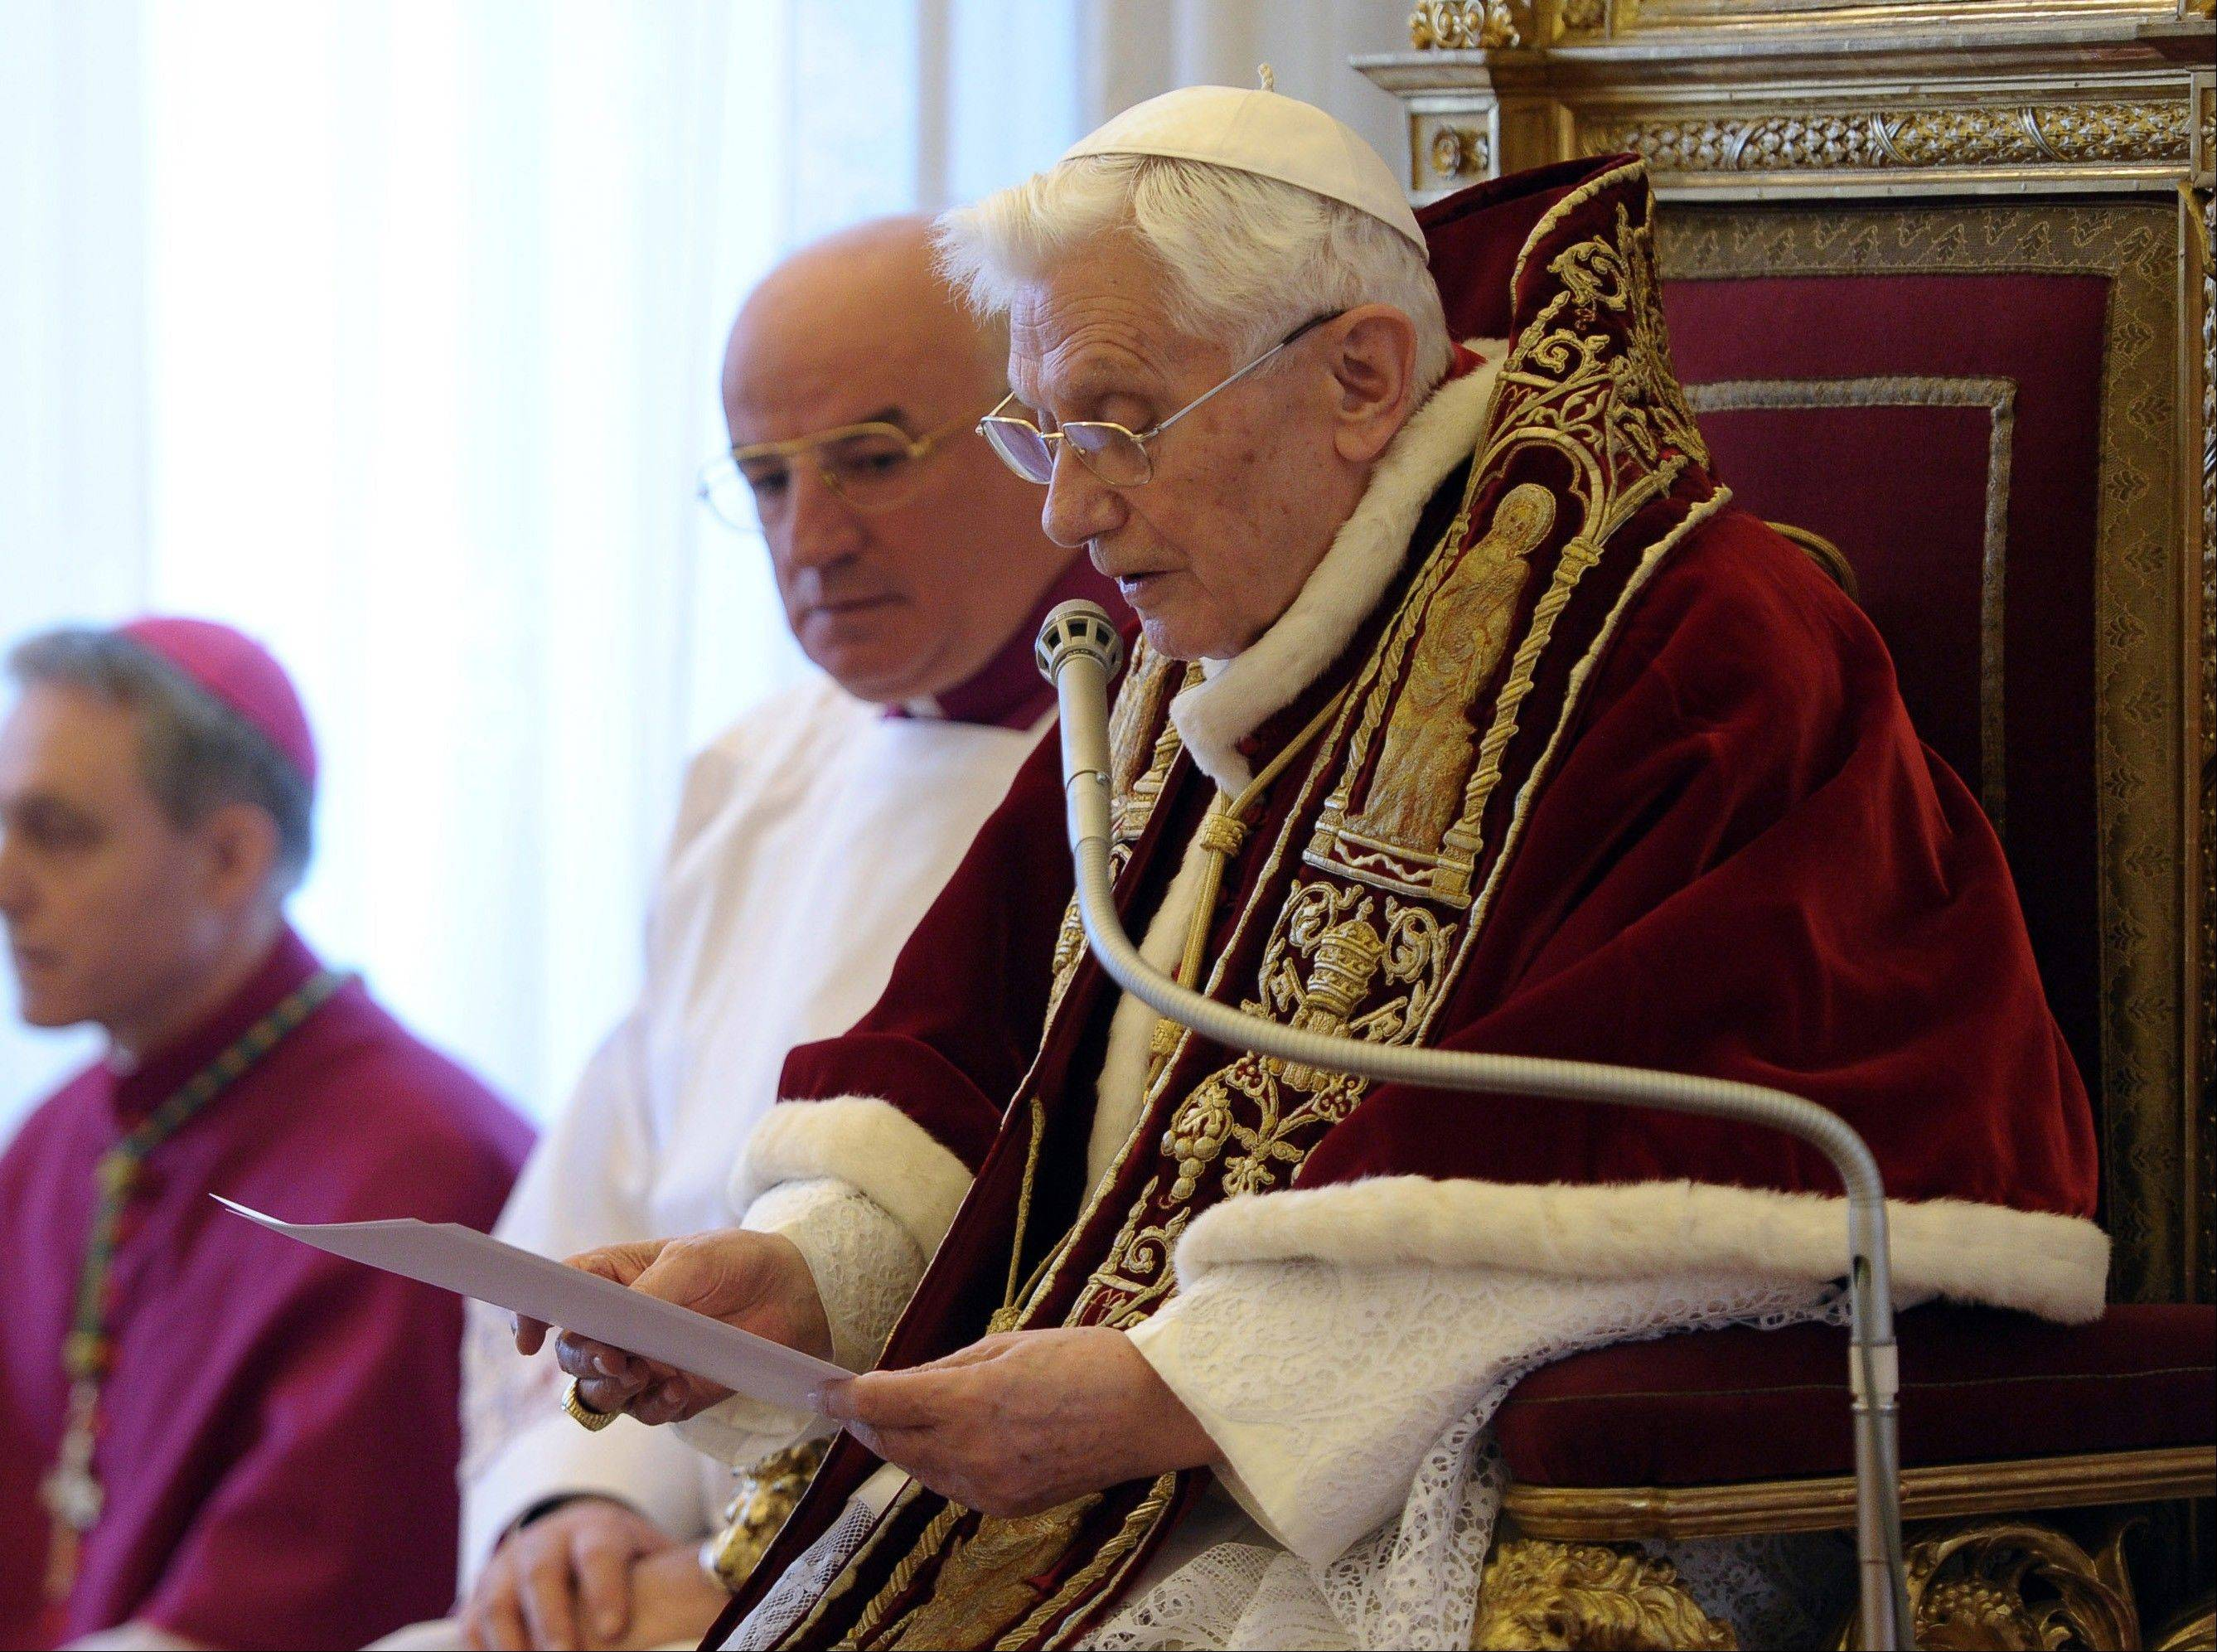 Pope Benedict XVI reads a document in Latin where he announces his resignation Monday during a meeting of Vatican cardinals.